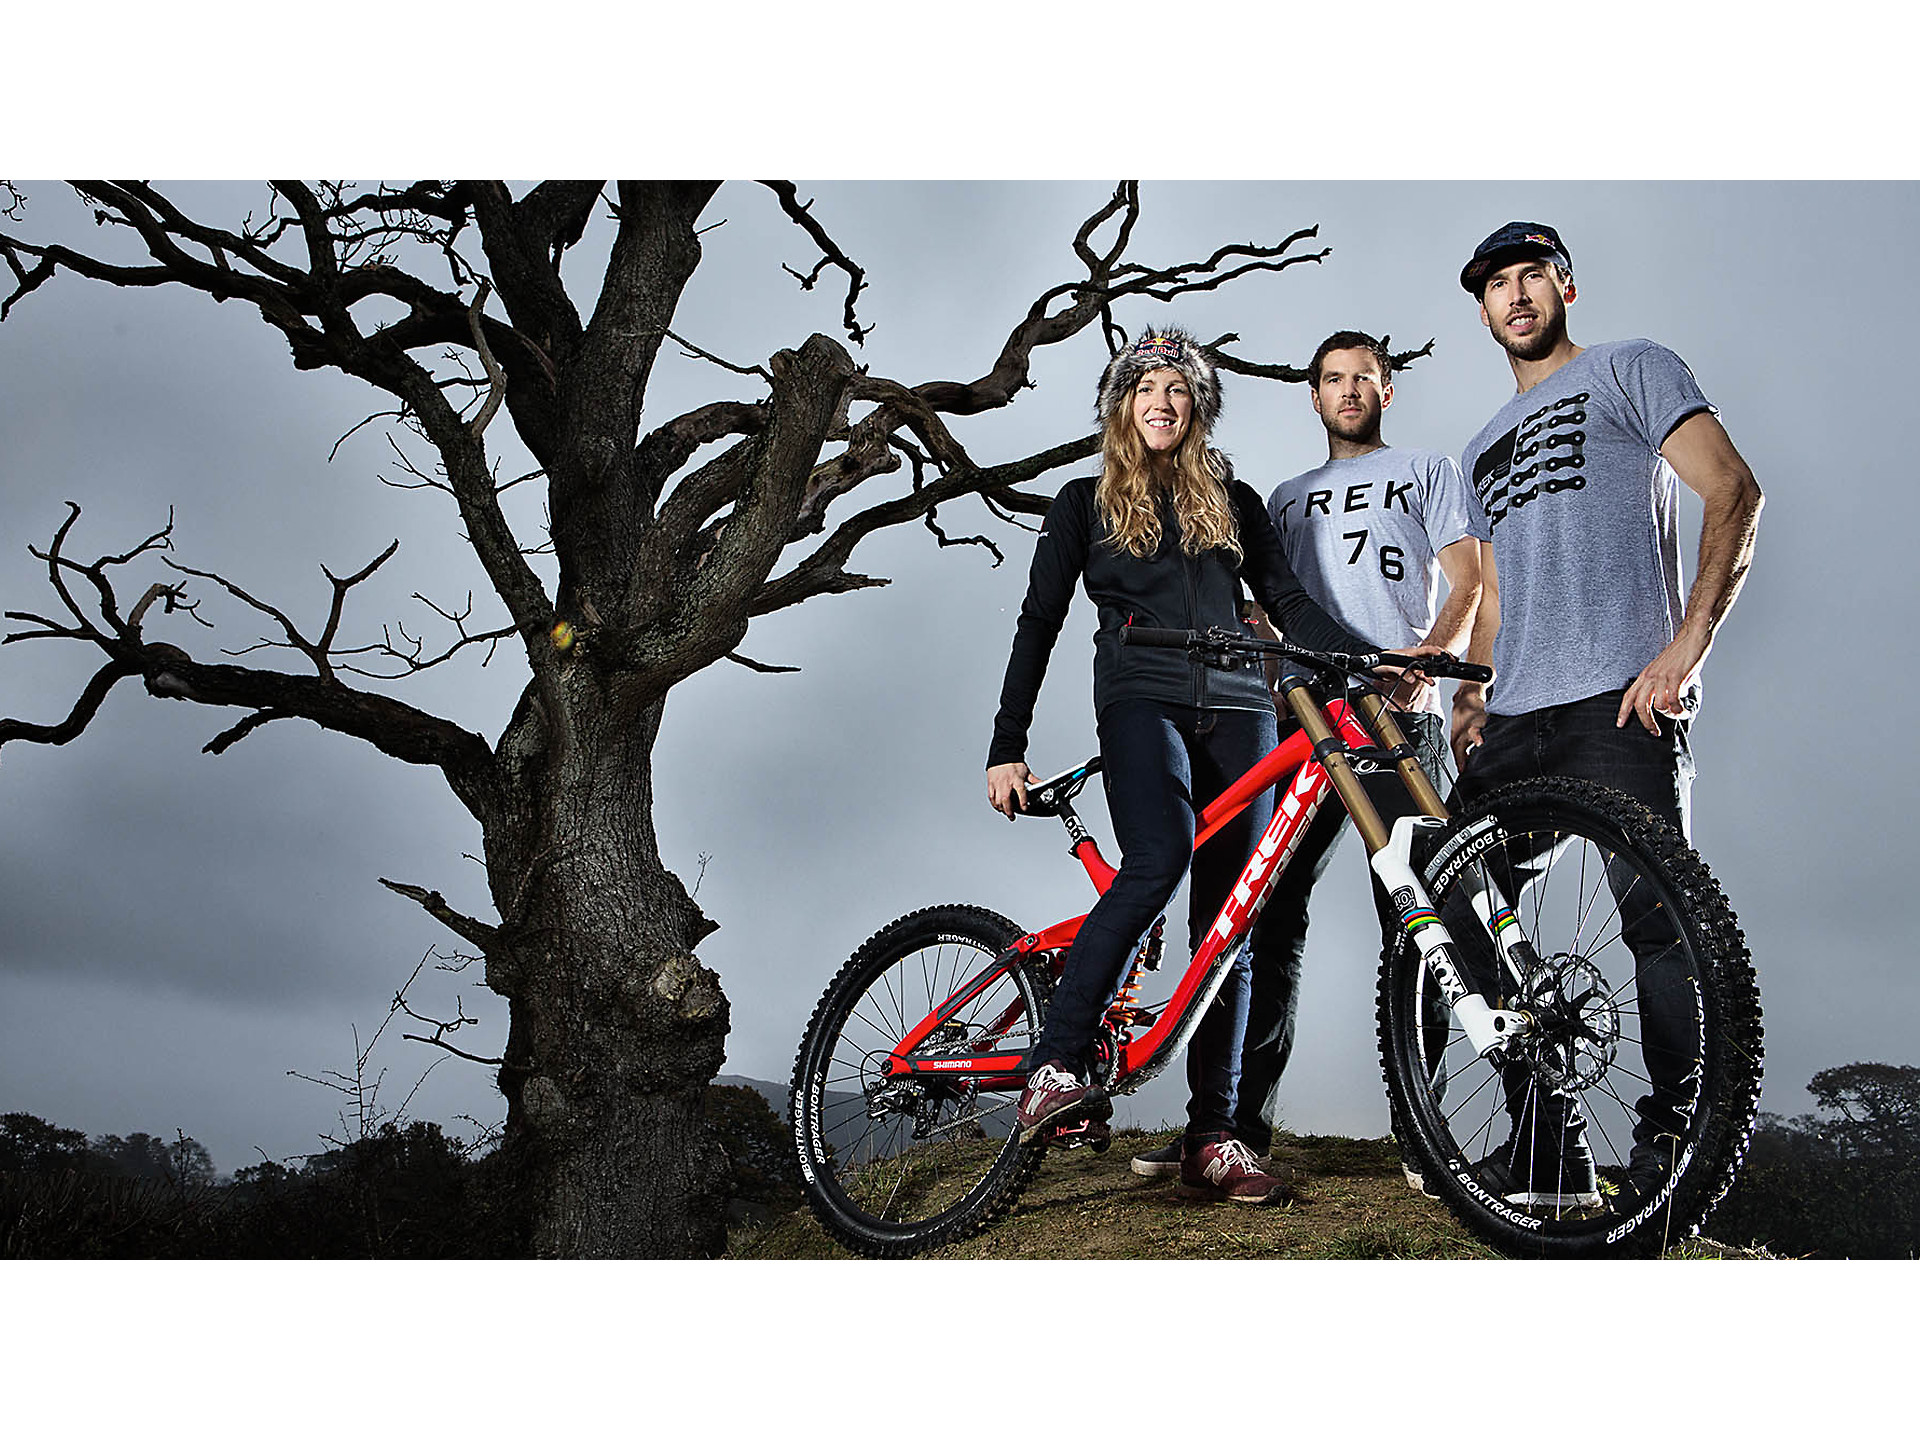 a64ffe9f006 Today, the Athertons are affectionately—and accurately—referred to as the  First Family of Downhill. Rachel joins her brothers Dan and Gee on Trek  Factory ...